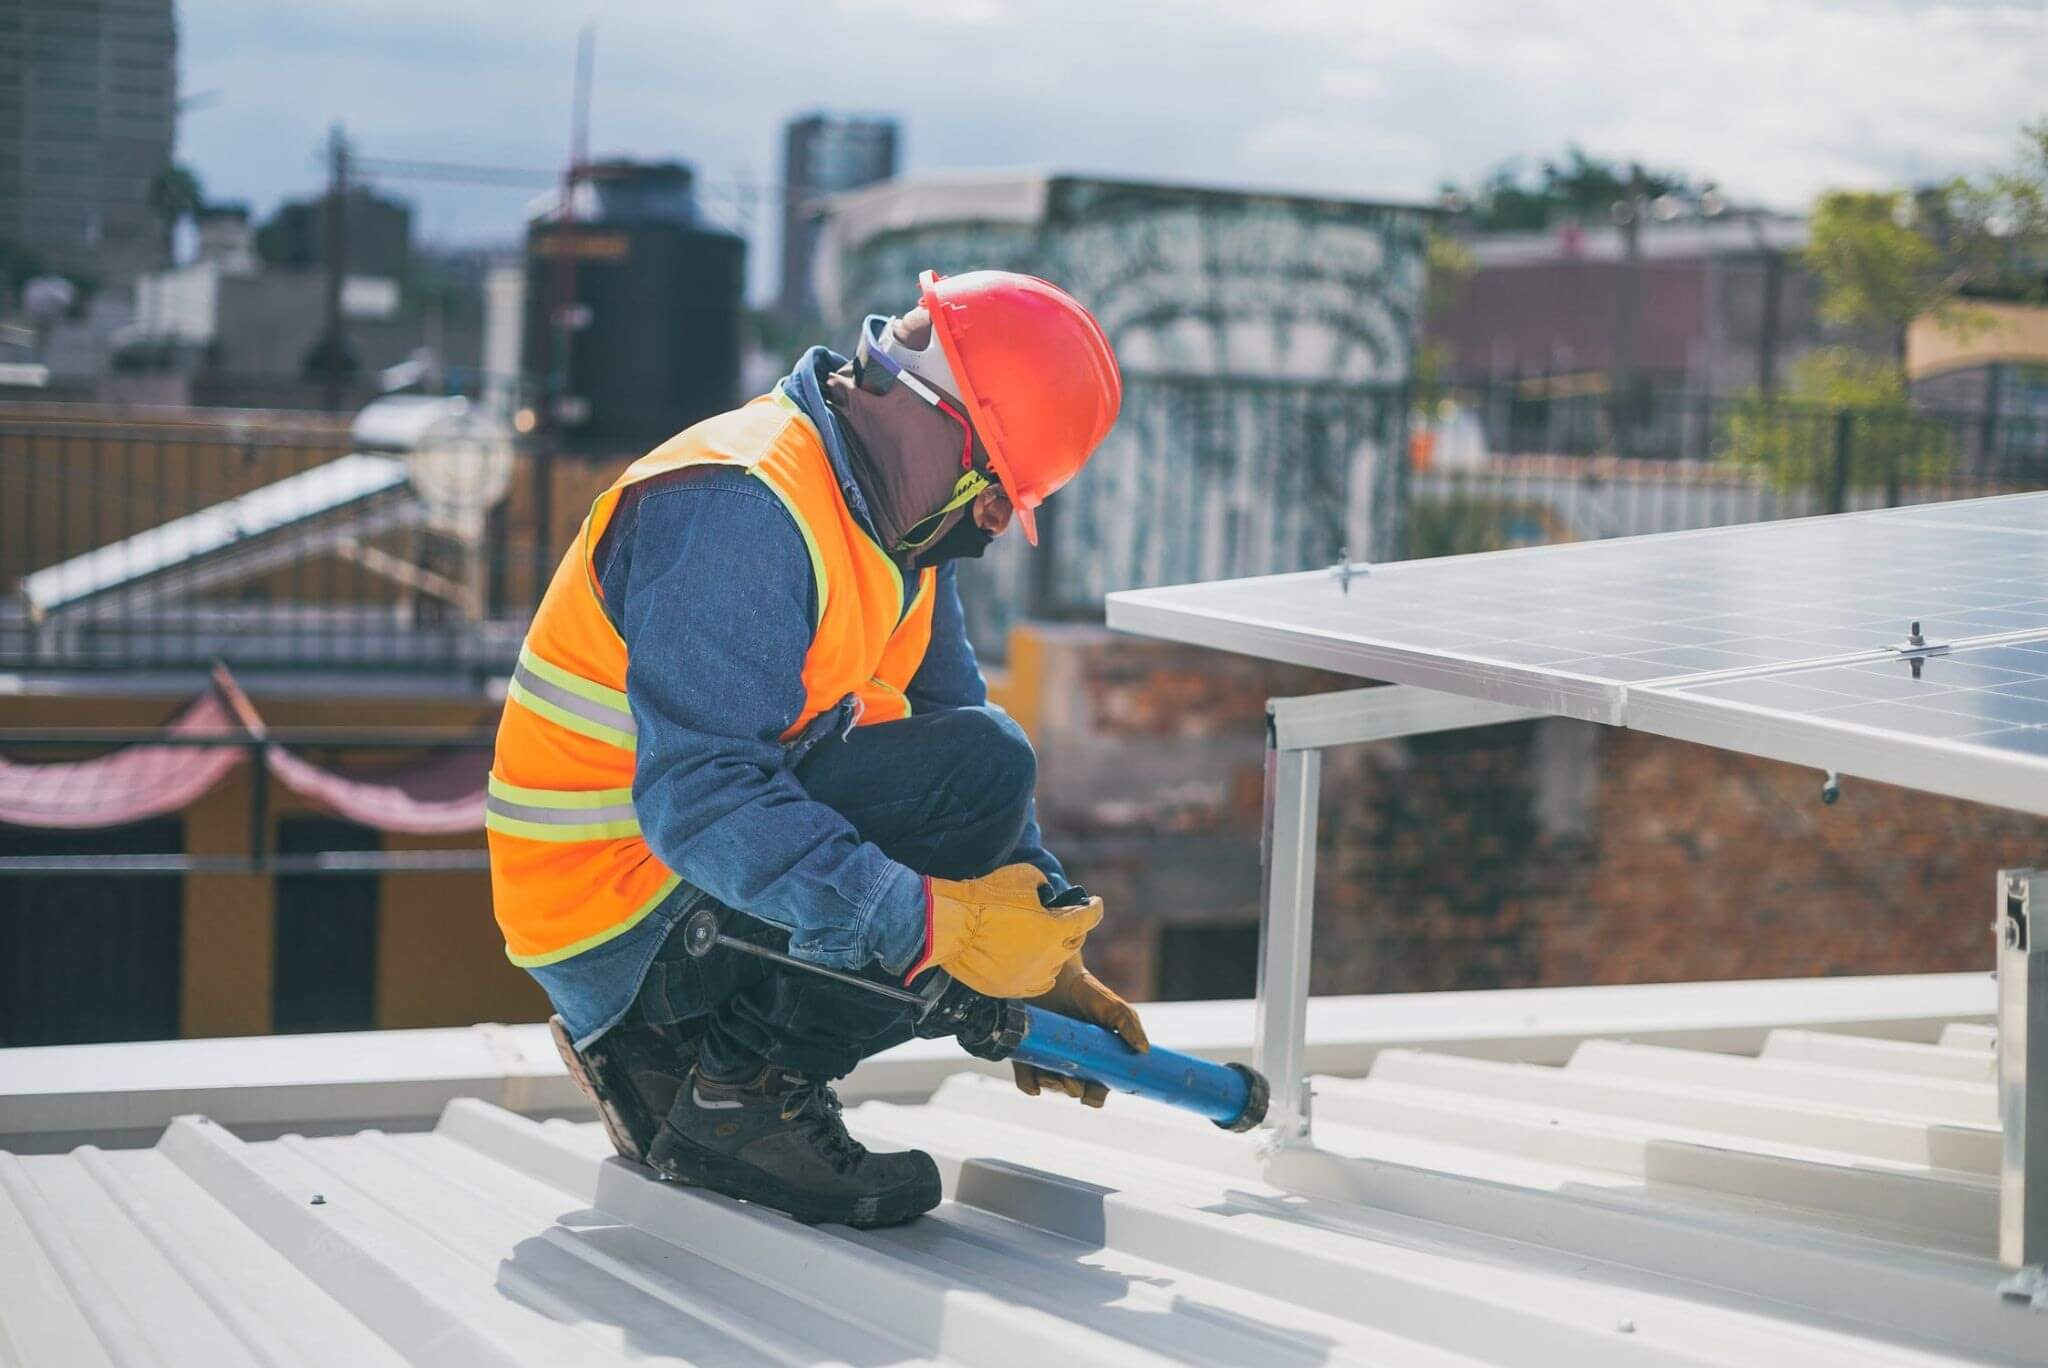 Construction worker installing solar panel on metal building roof